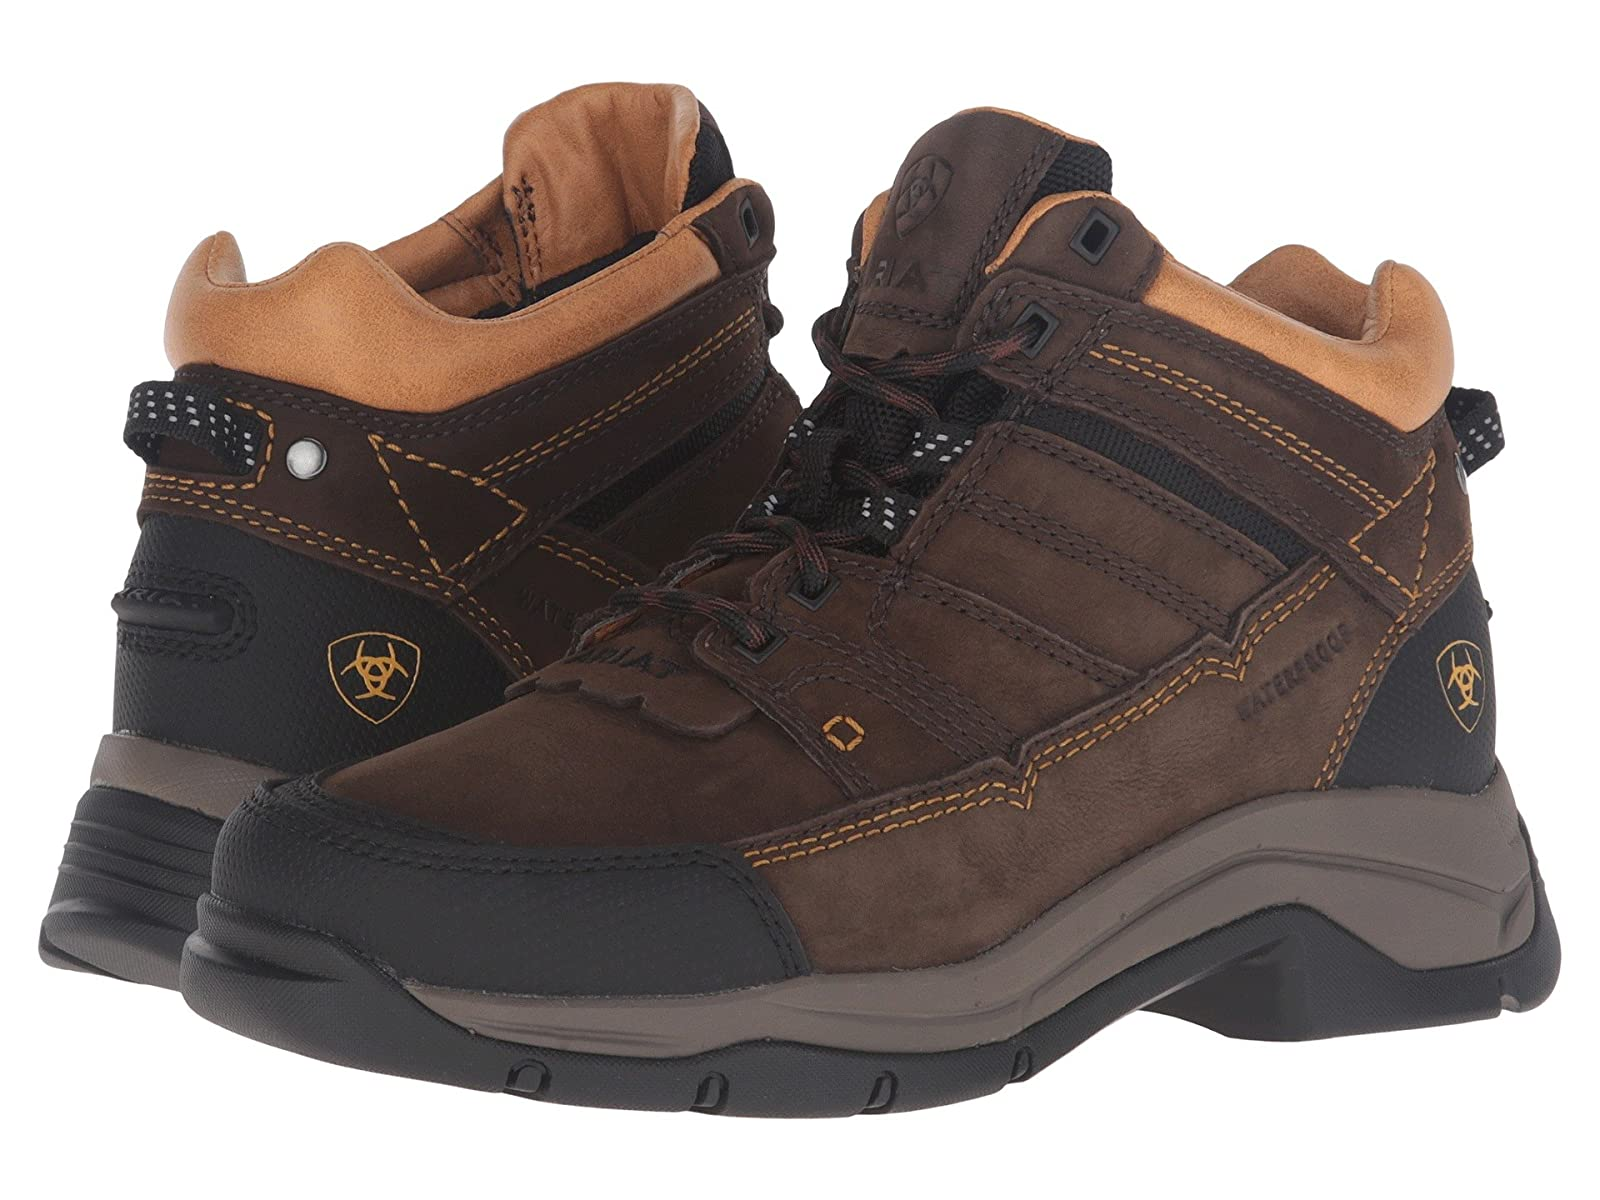 Ariat Terrain Pro H2OSelling fashionable and eye-catching shoes